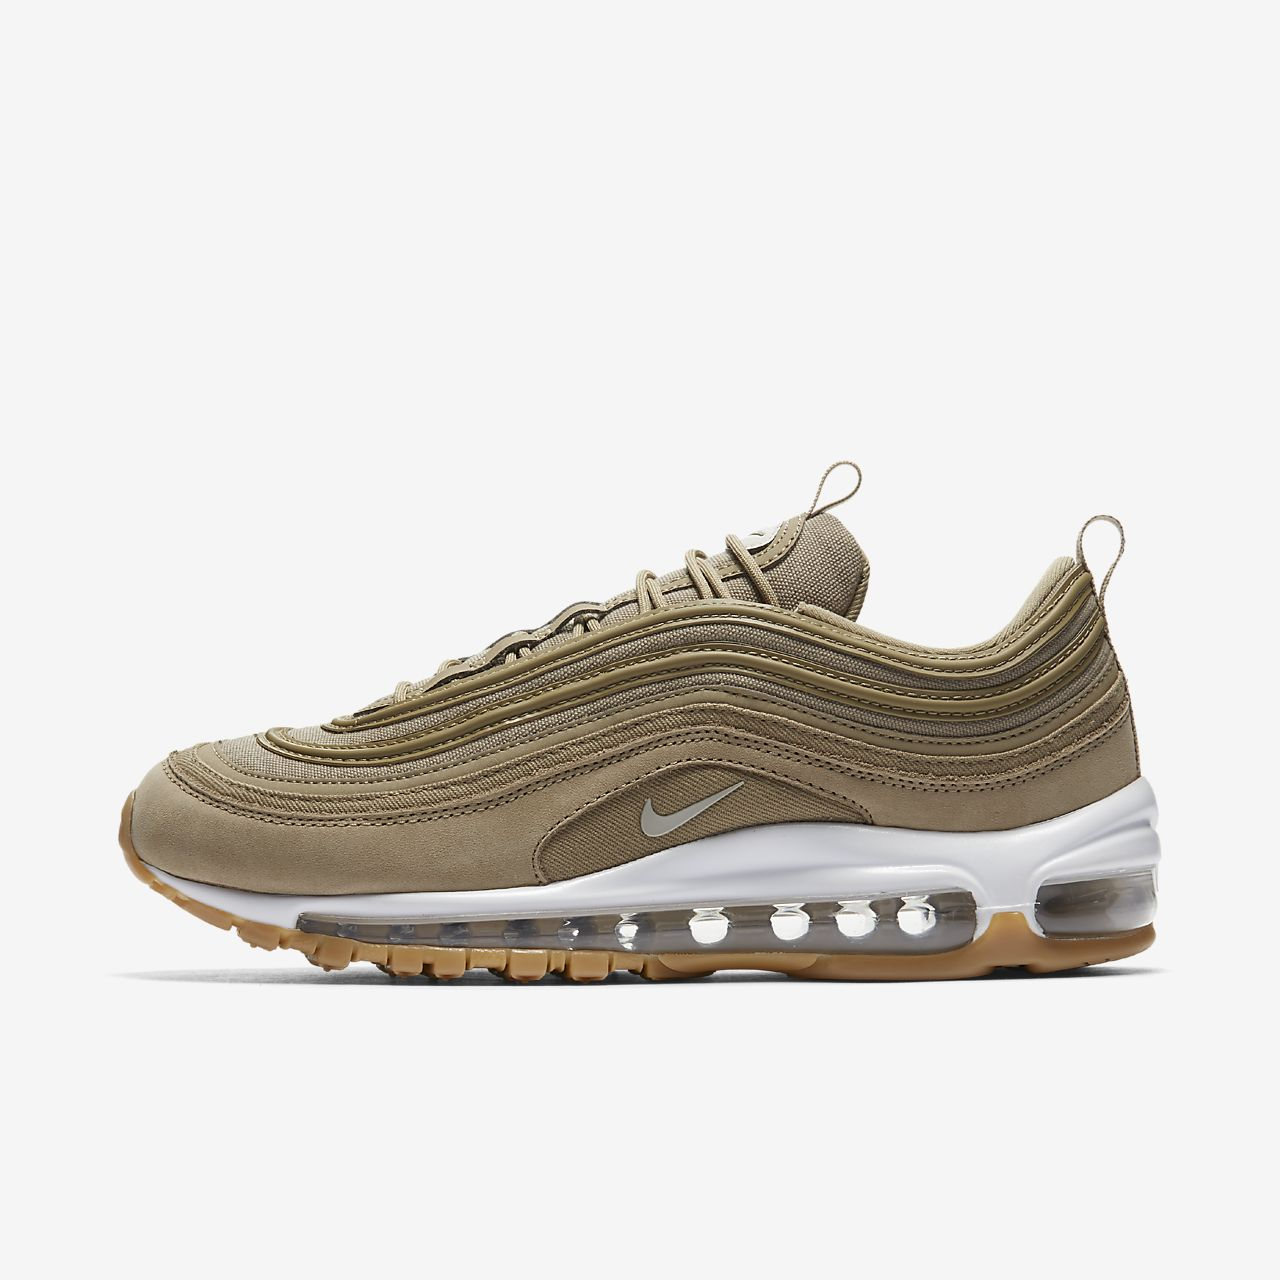 ... Nike Air Max '97 UT Women's Shoe